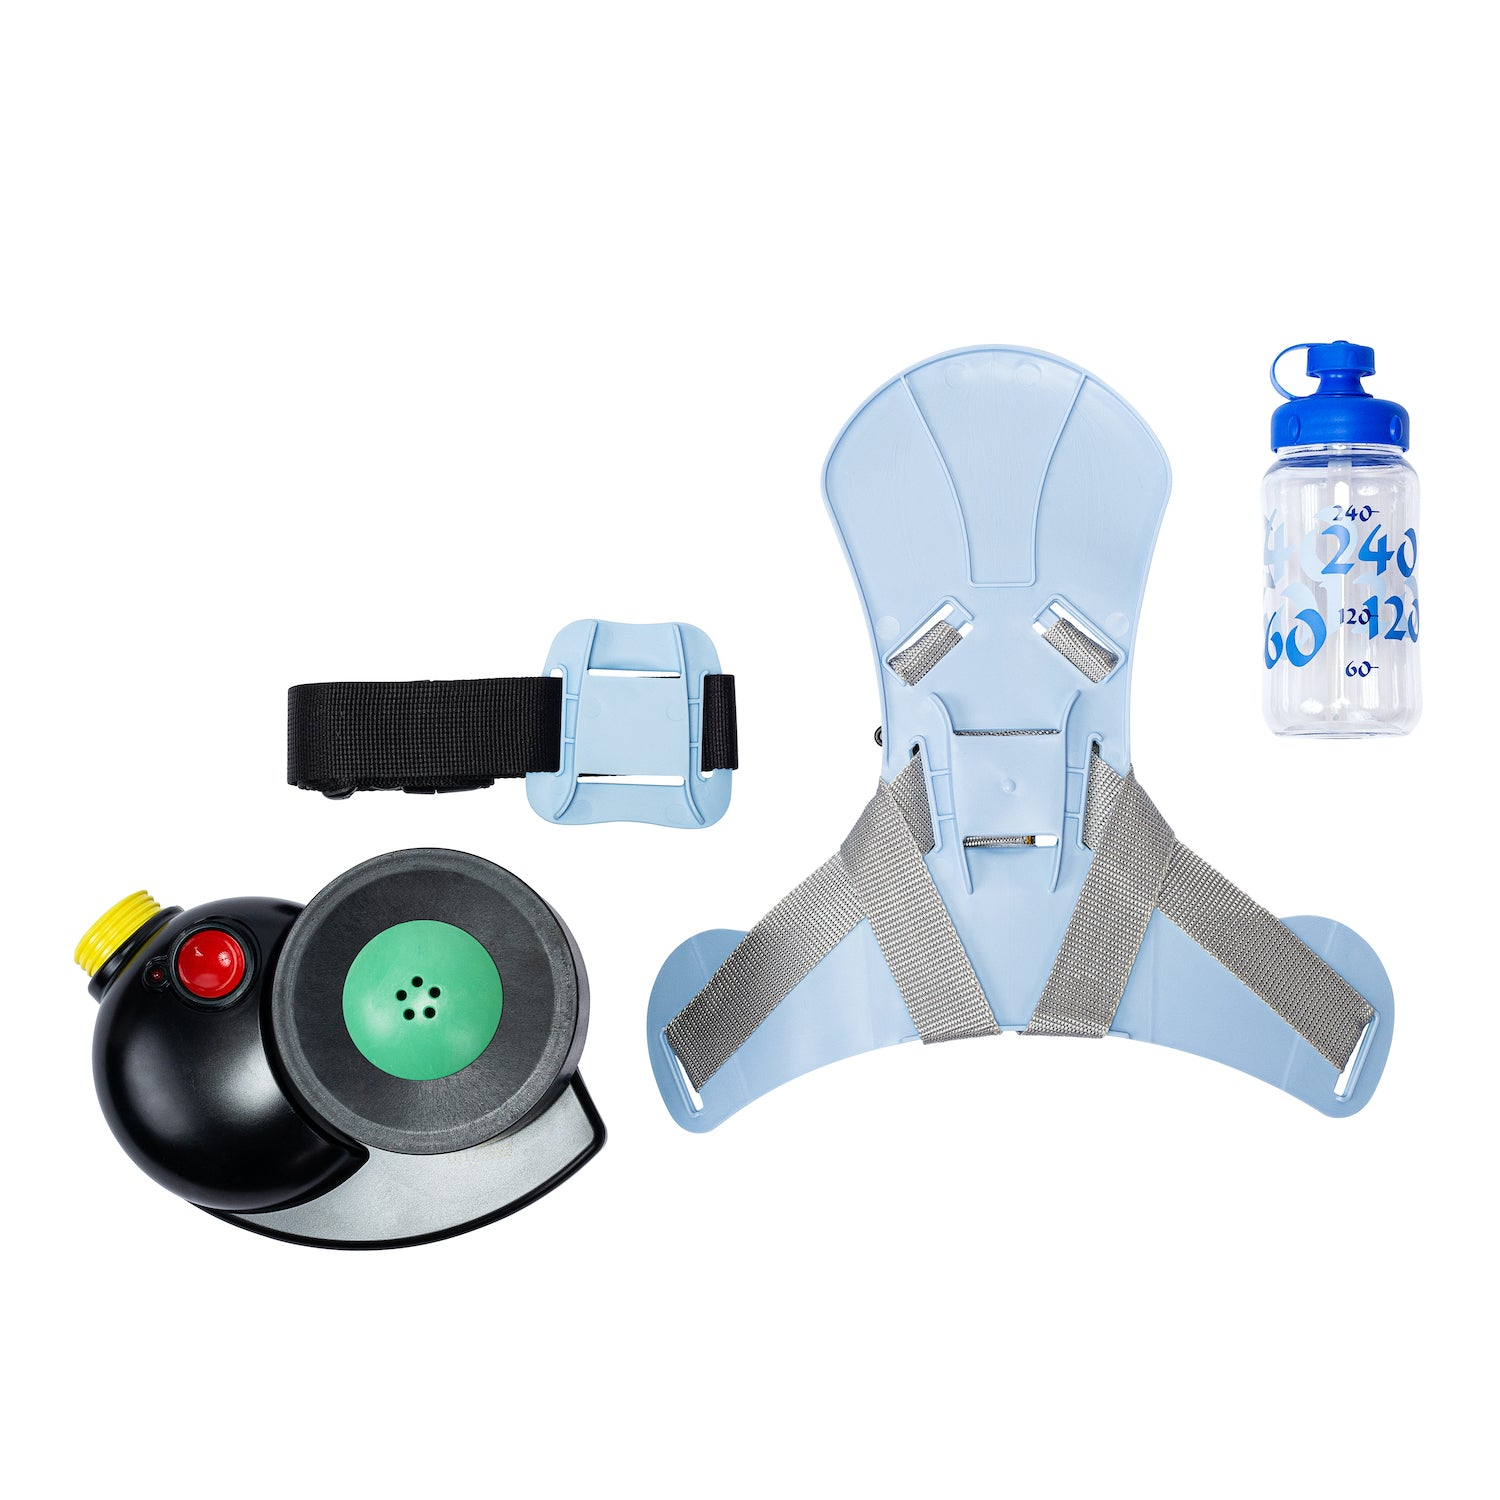 Accessories included with the CM-3M Kids Gas Mask